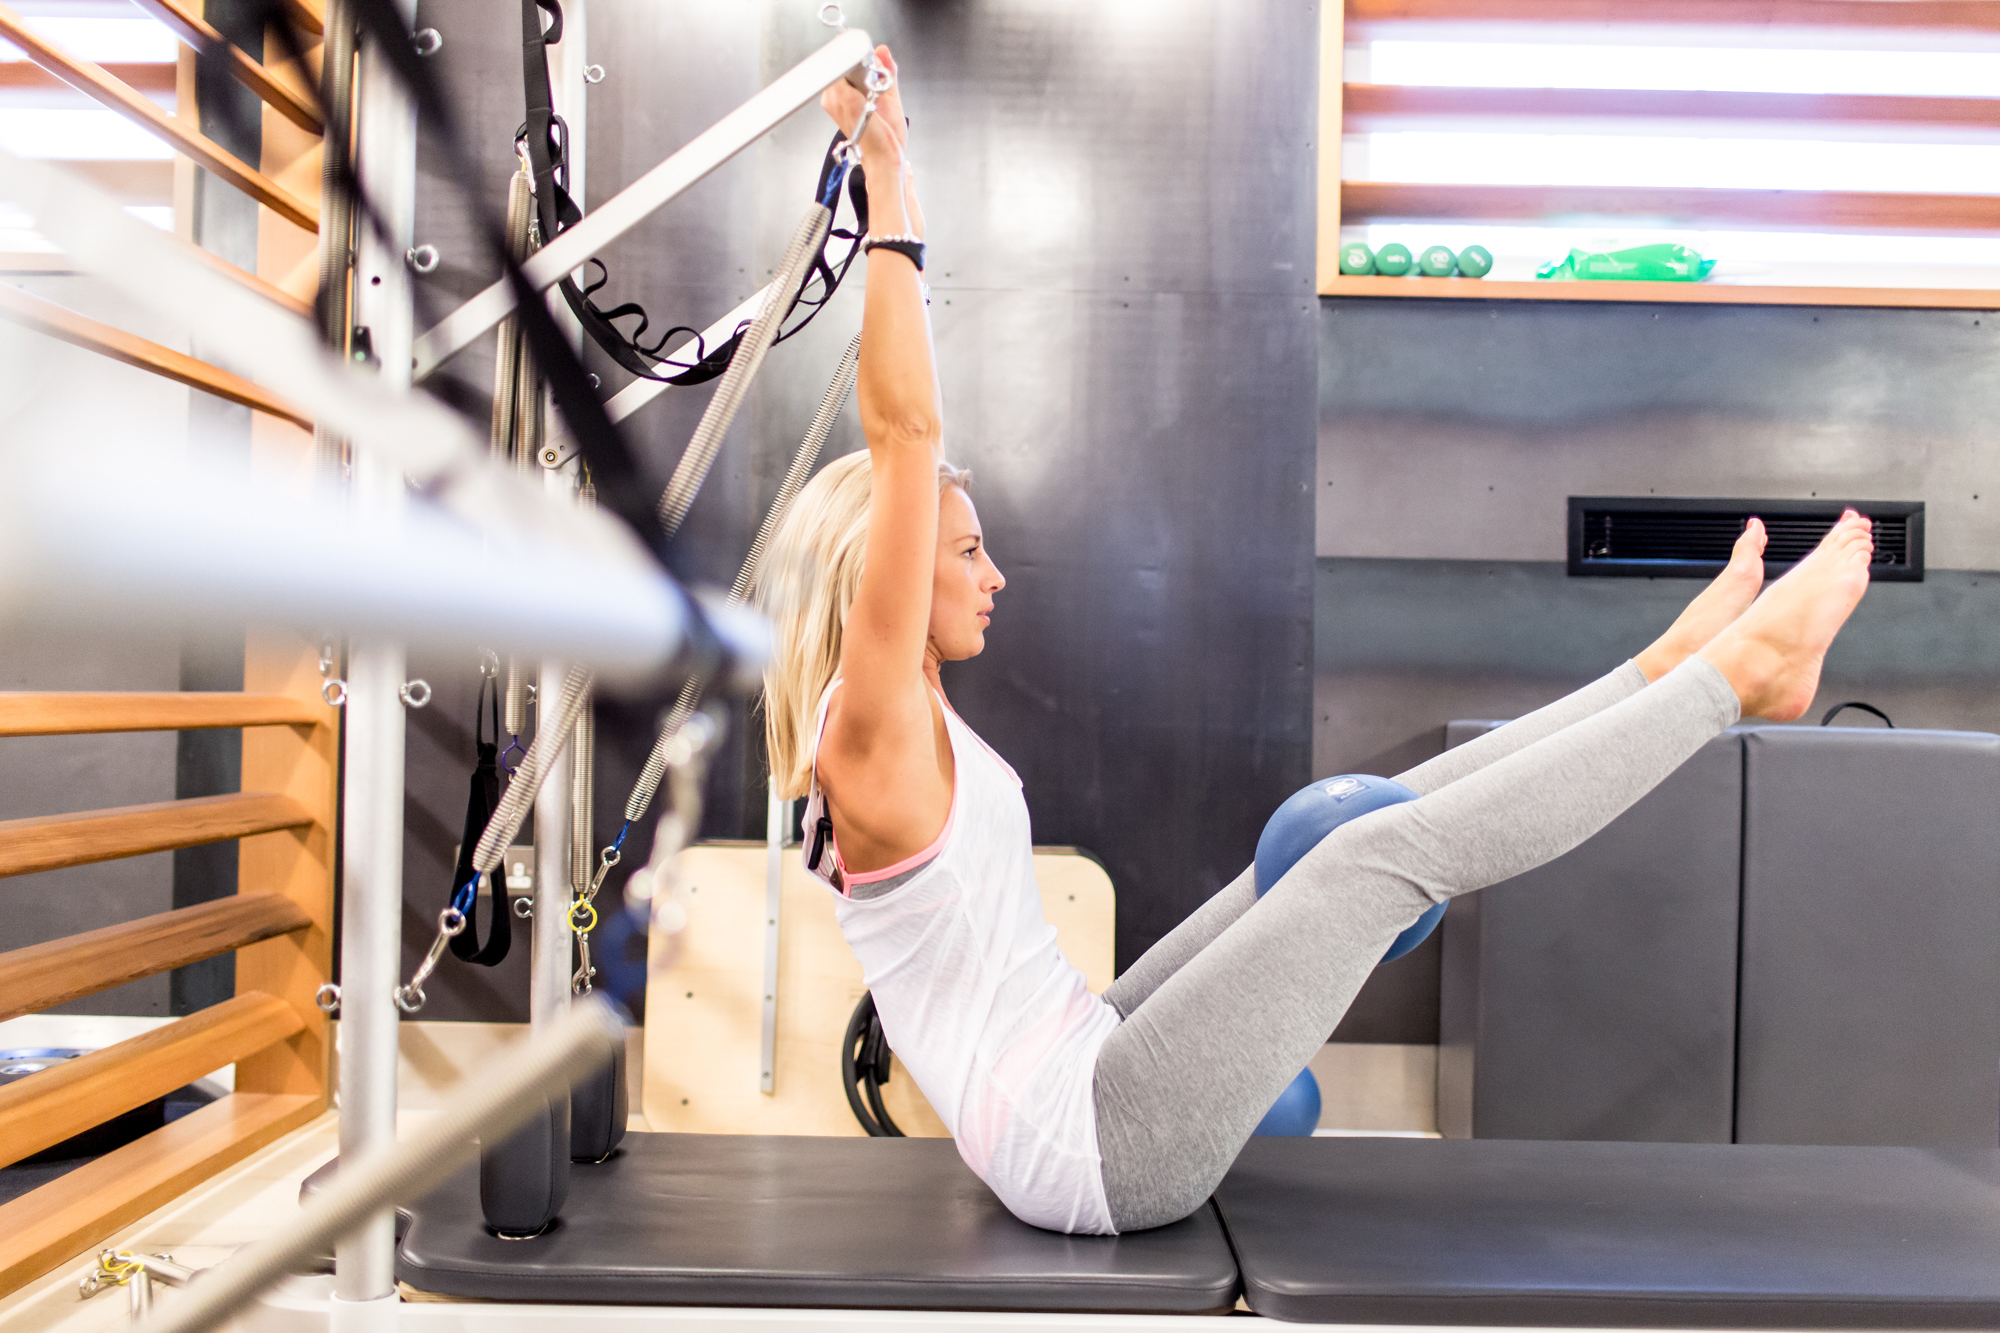 Reformer pilates at Grace Belgravia